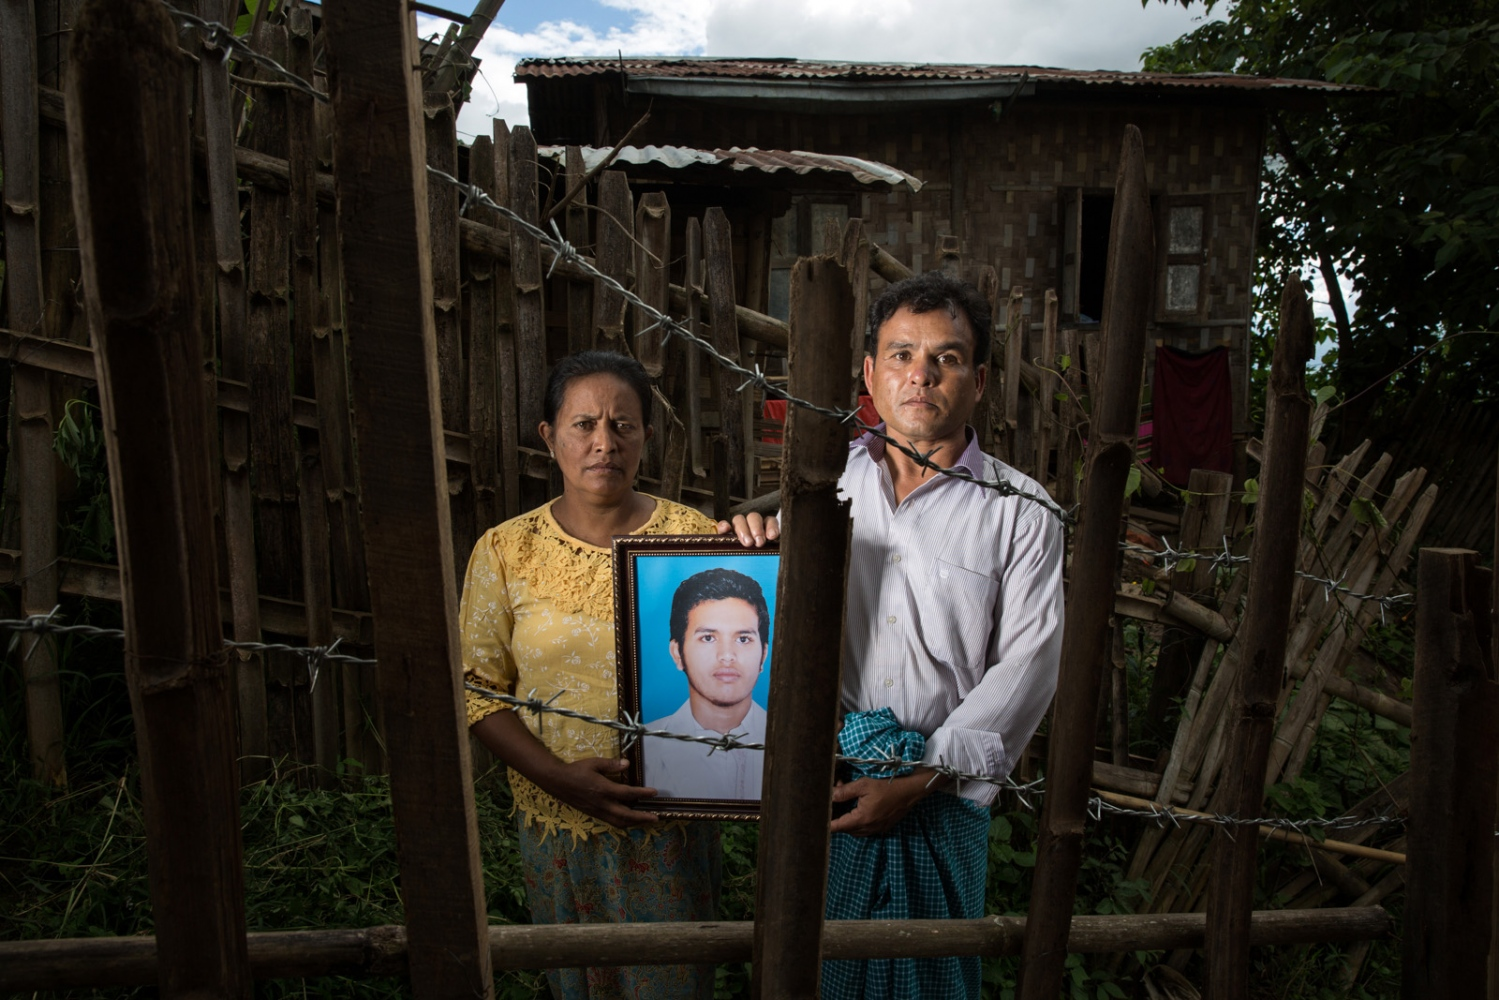 Arbitrarily detained Sithu Hein's father and mother hold a portrait of their son outside their family home. Myanmar military intelligence arrested Sithu Hein, 19, en route to a wedding in Kunhein, Shan State on August 4, 2014.  The Taunggyi District Court sentenced him in a trial that failed to meet fair trial standards to 14 years' imprisonment with hard labor under the sections 5(J) and 5(L) of the 1950 Emergency Provisions Act. In October 2016, the Myanmar government repealed the notoriously controversial 1950 Emergency Provisions Act, yet Sithu Hein and others remain detained under the now defunct Act. In October 2016, the Myanmar government repealed the notoriously controversial 1950 Emergency Provisions Act, yet Sithu Hein and others remain detained under the now defunct Act.